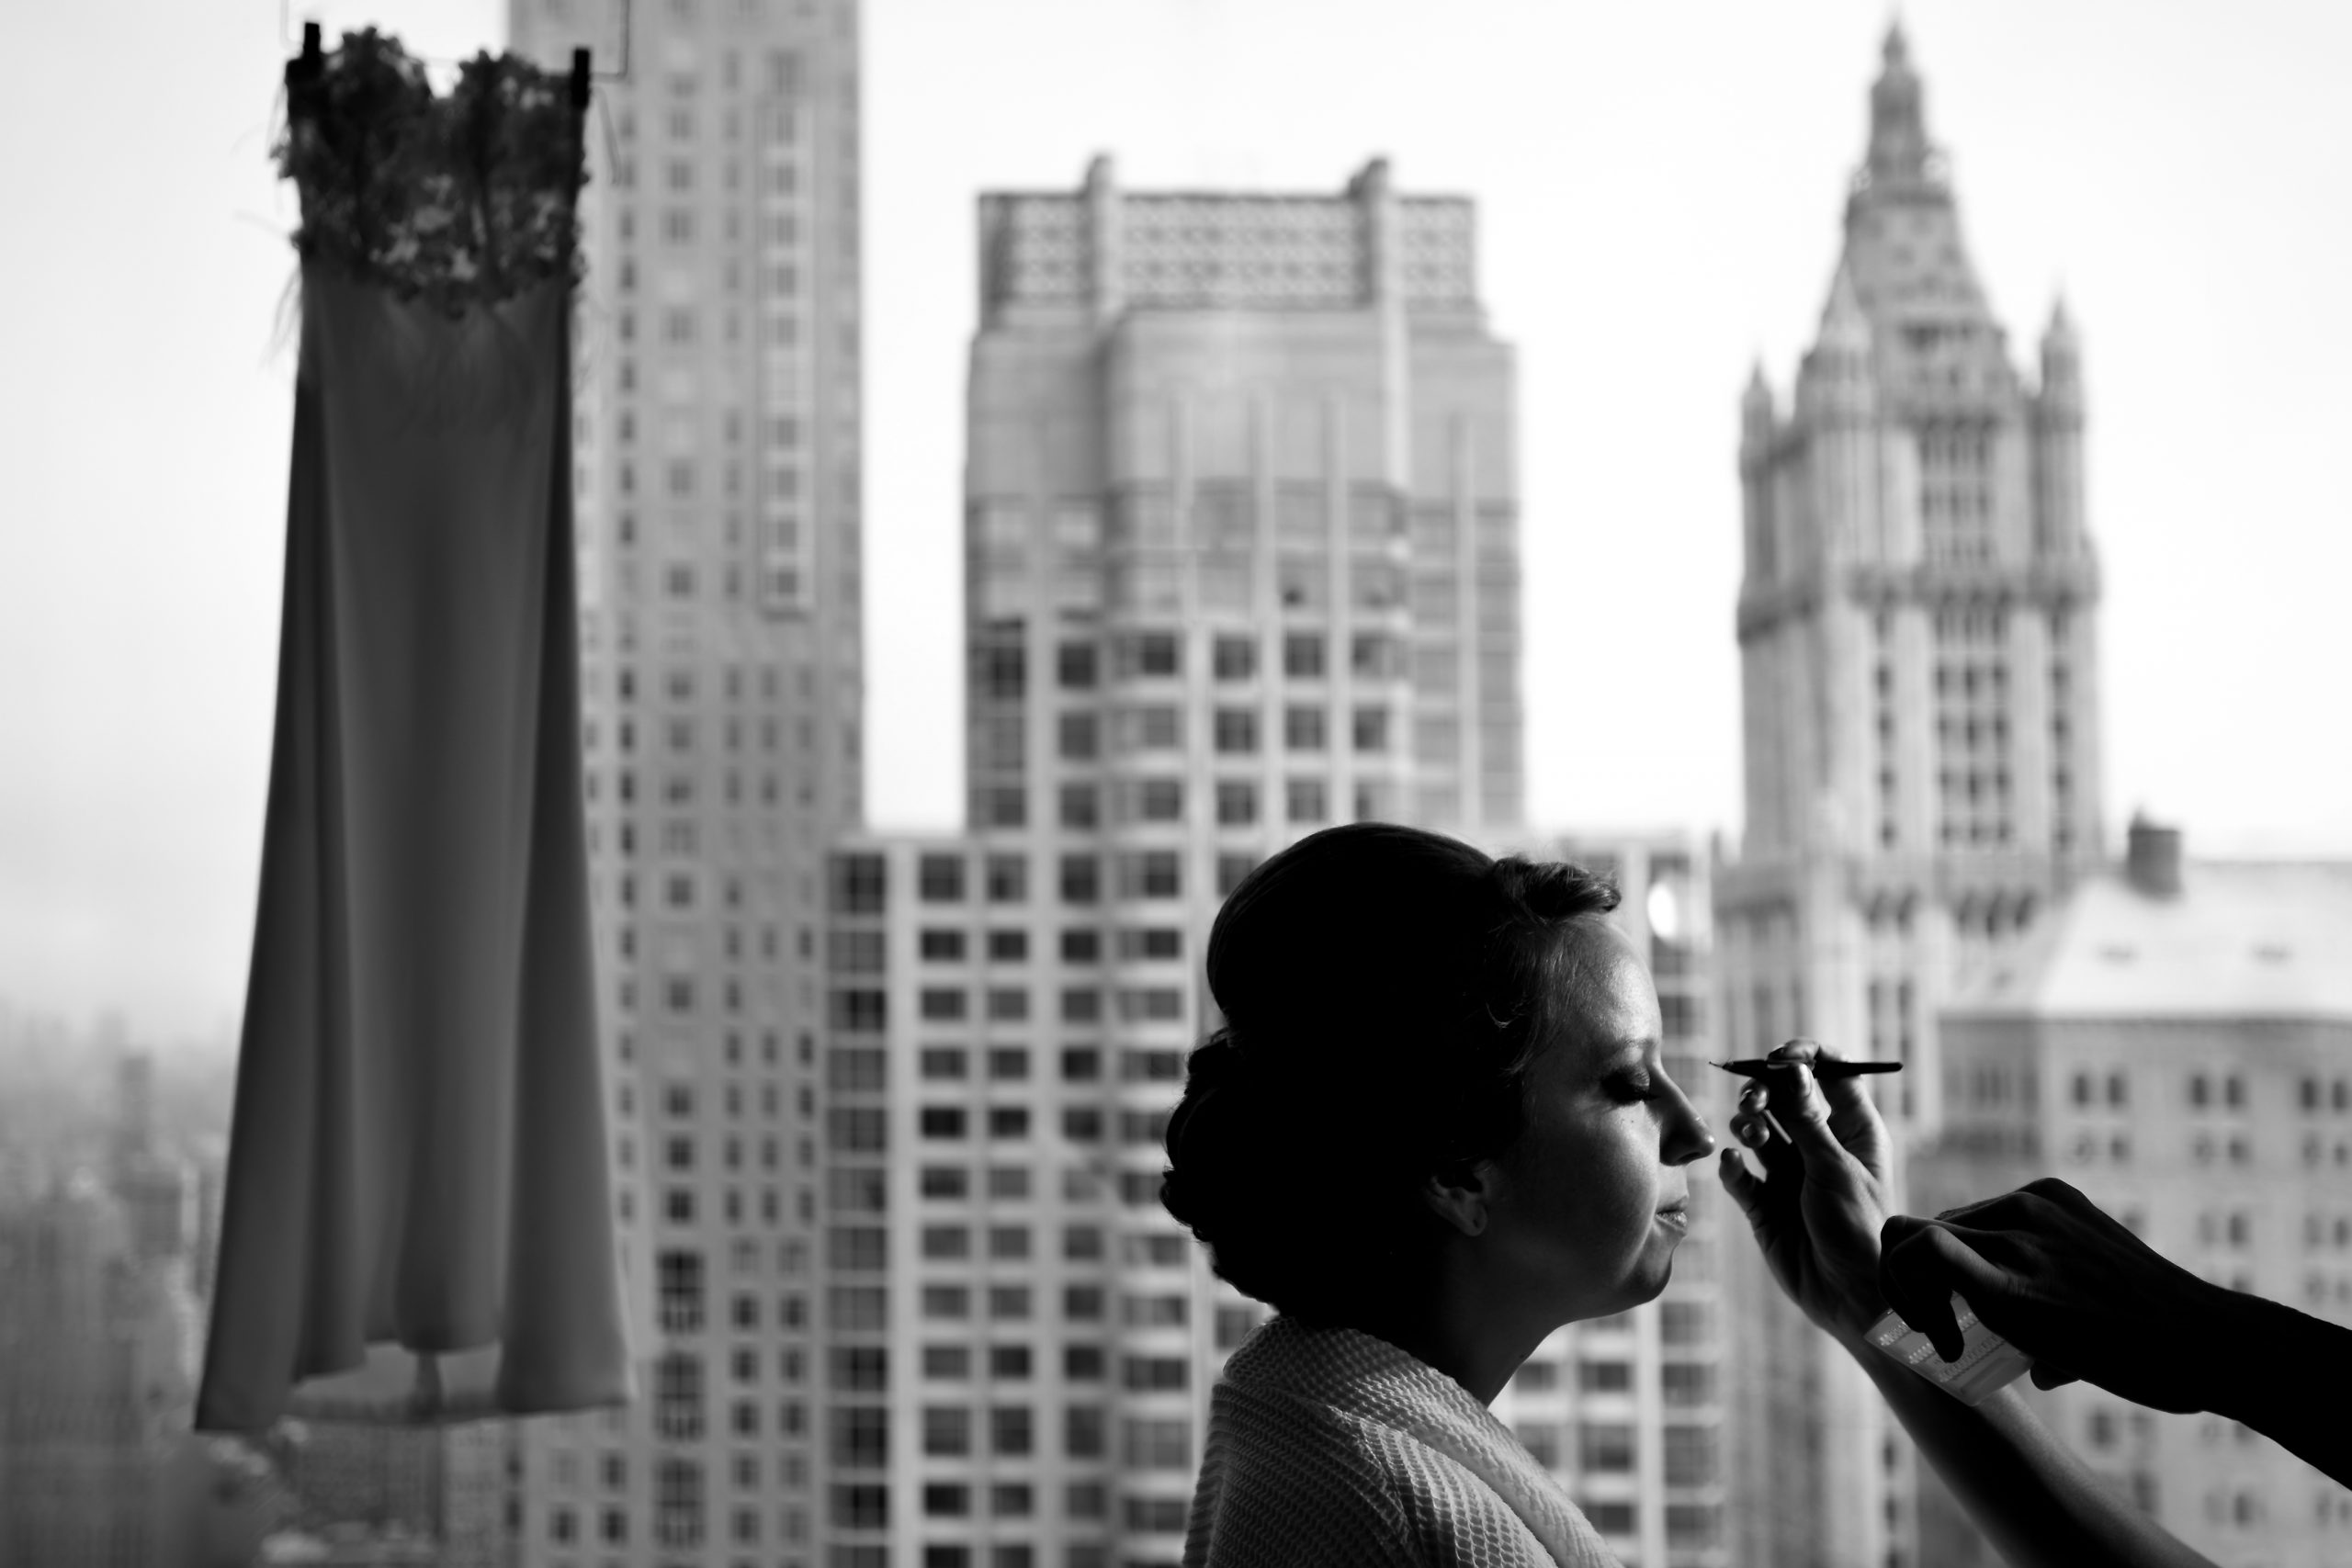 A bride gets her makeup done with a background of high-rise buildings